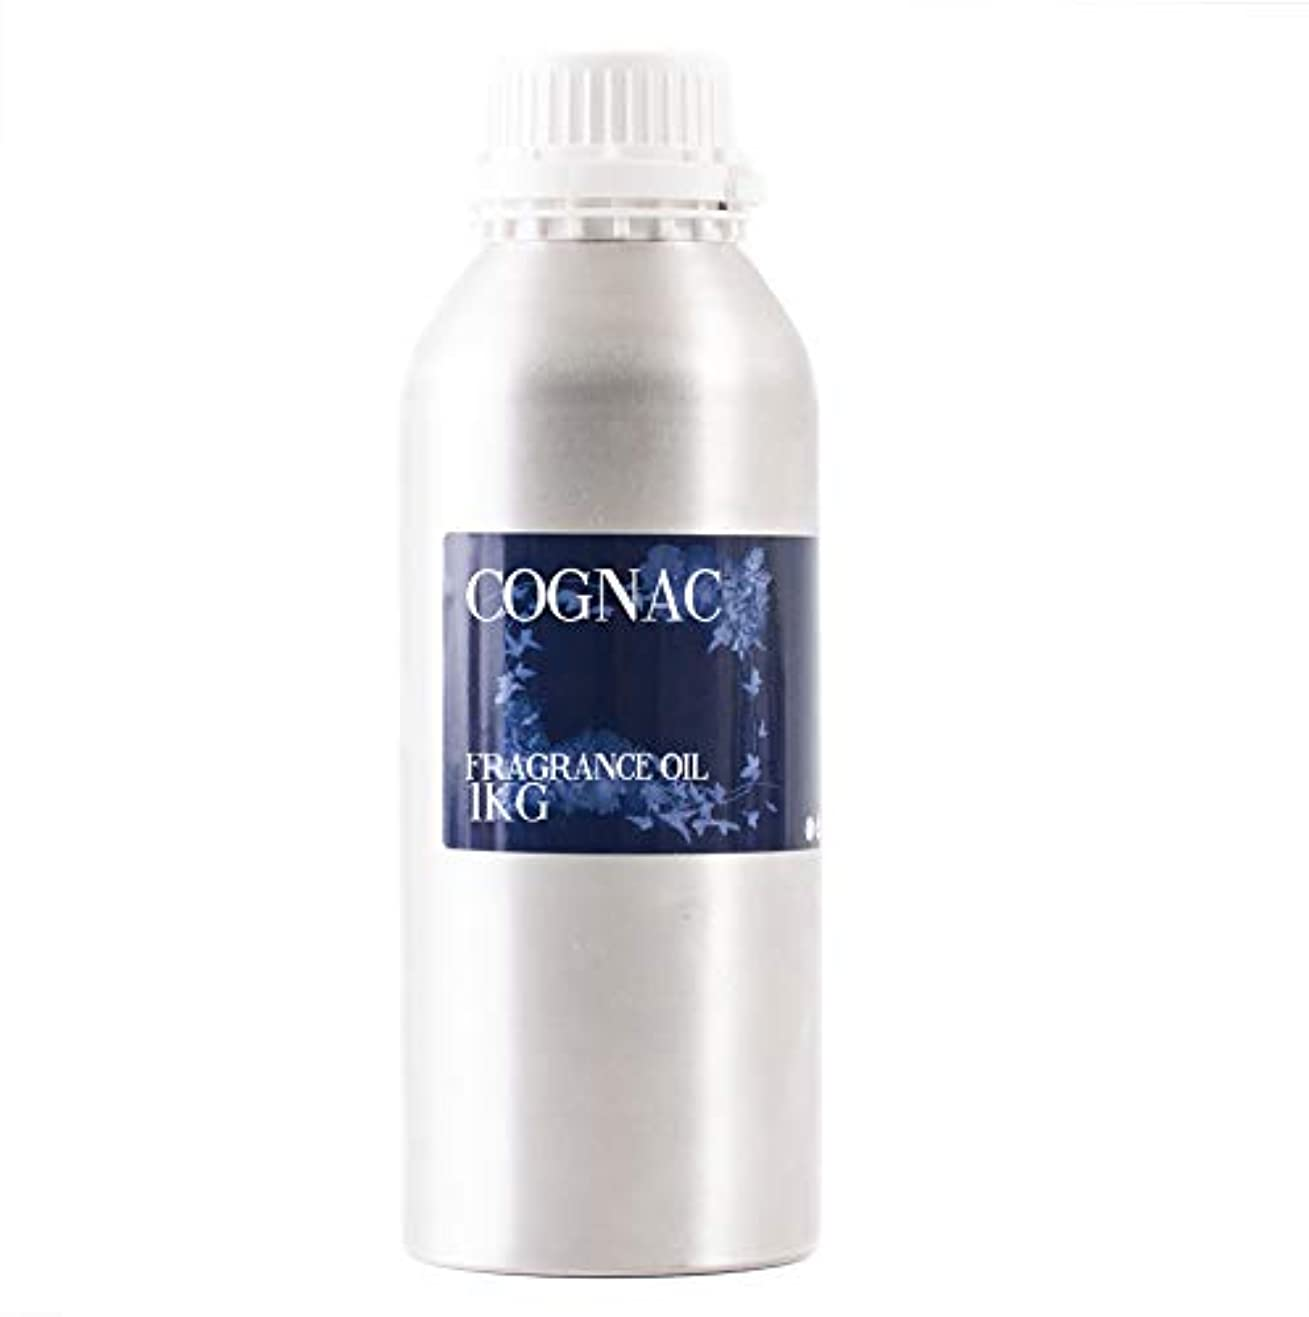 完全にリビングルームハードMystic Moments | Cognac Fragrance Oil - 1Kg